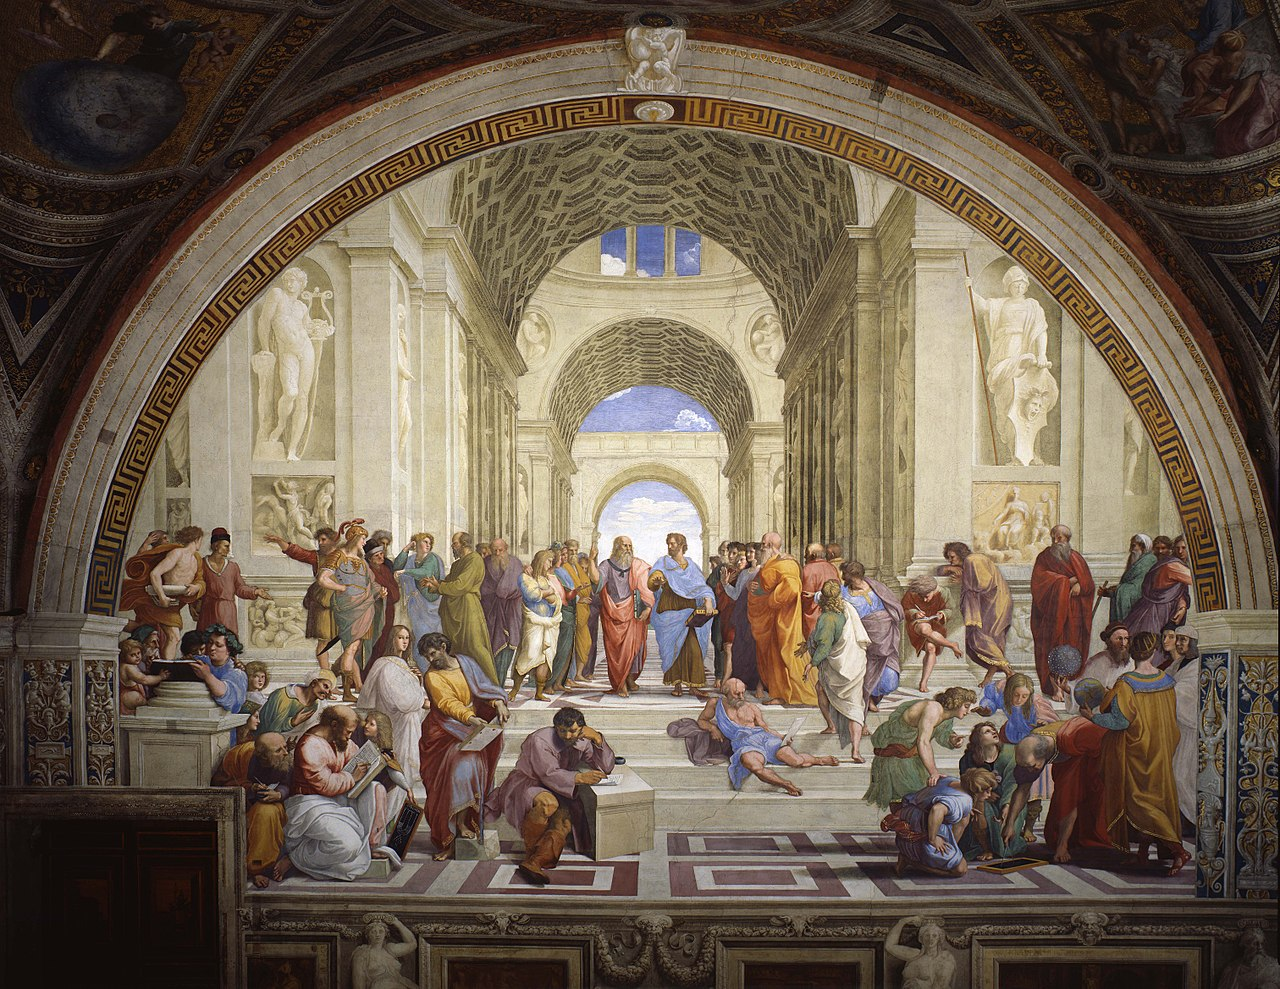 Raphael's fresco The School of Athens